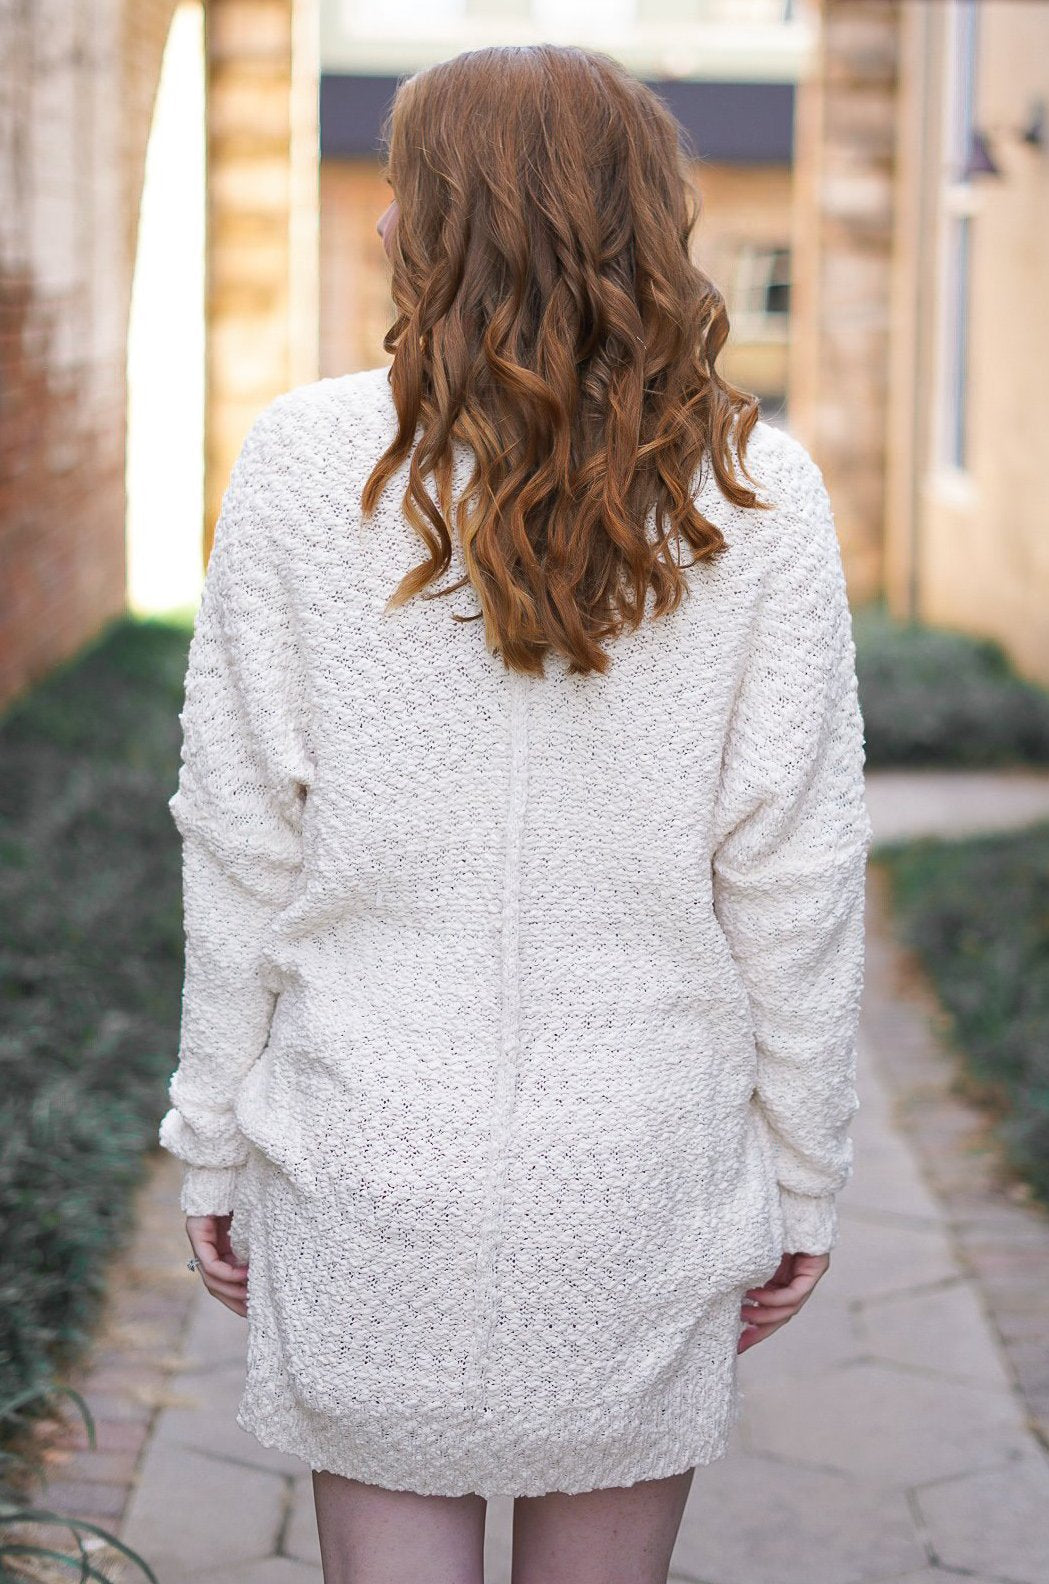 Habits of My Heart Cardigan - Cream